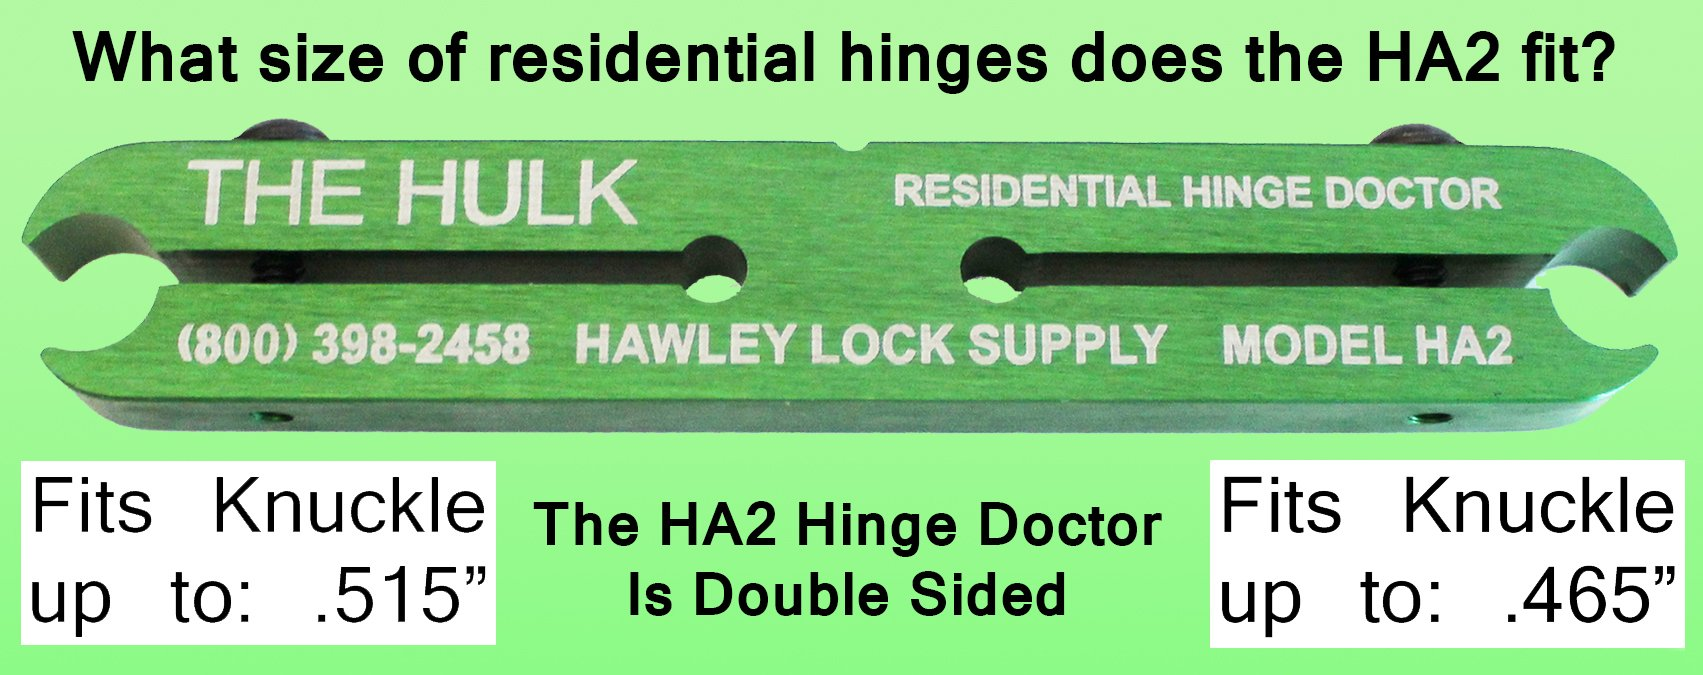 The Hinge Doctor HA2 for residential hinges.